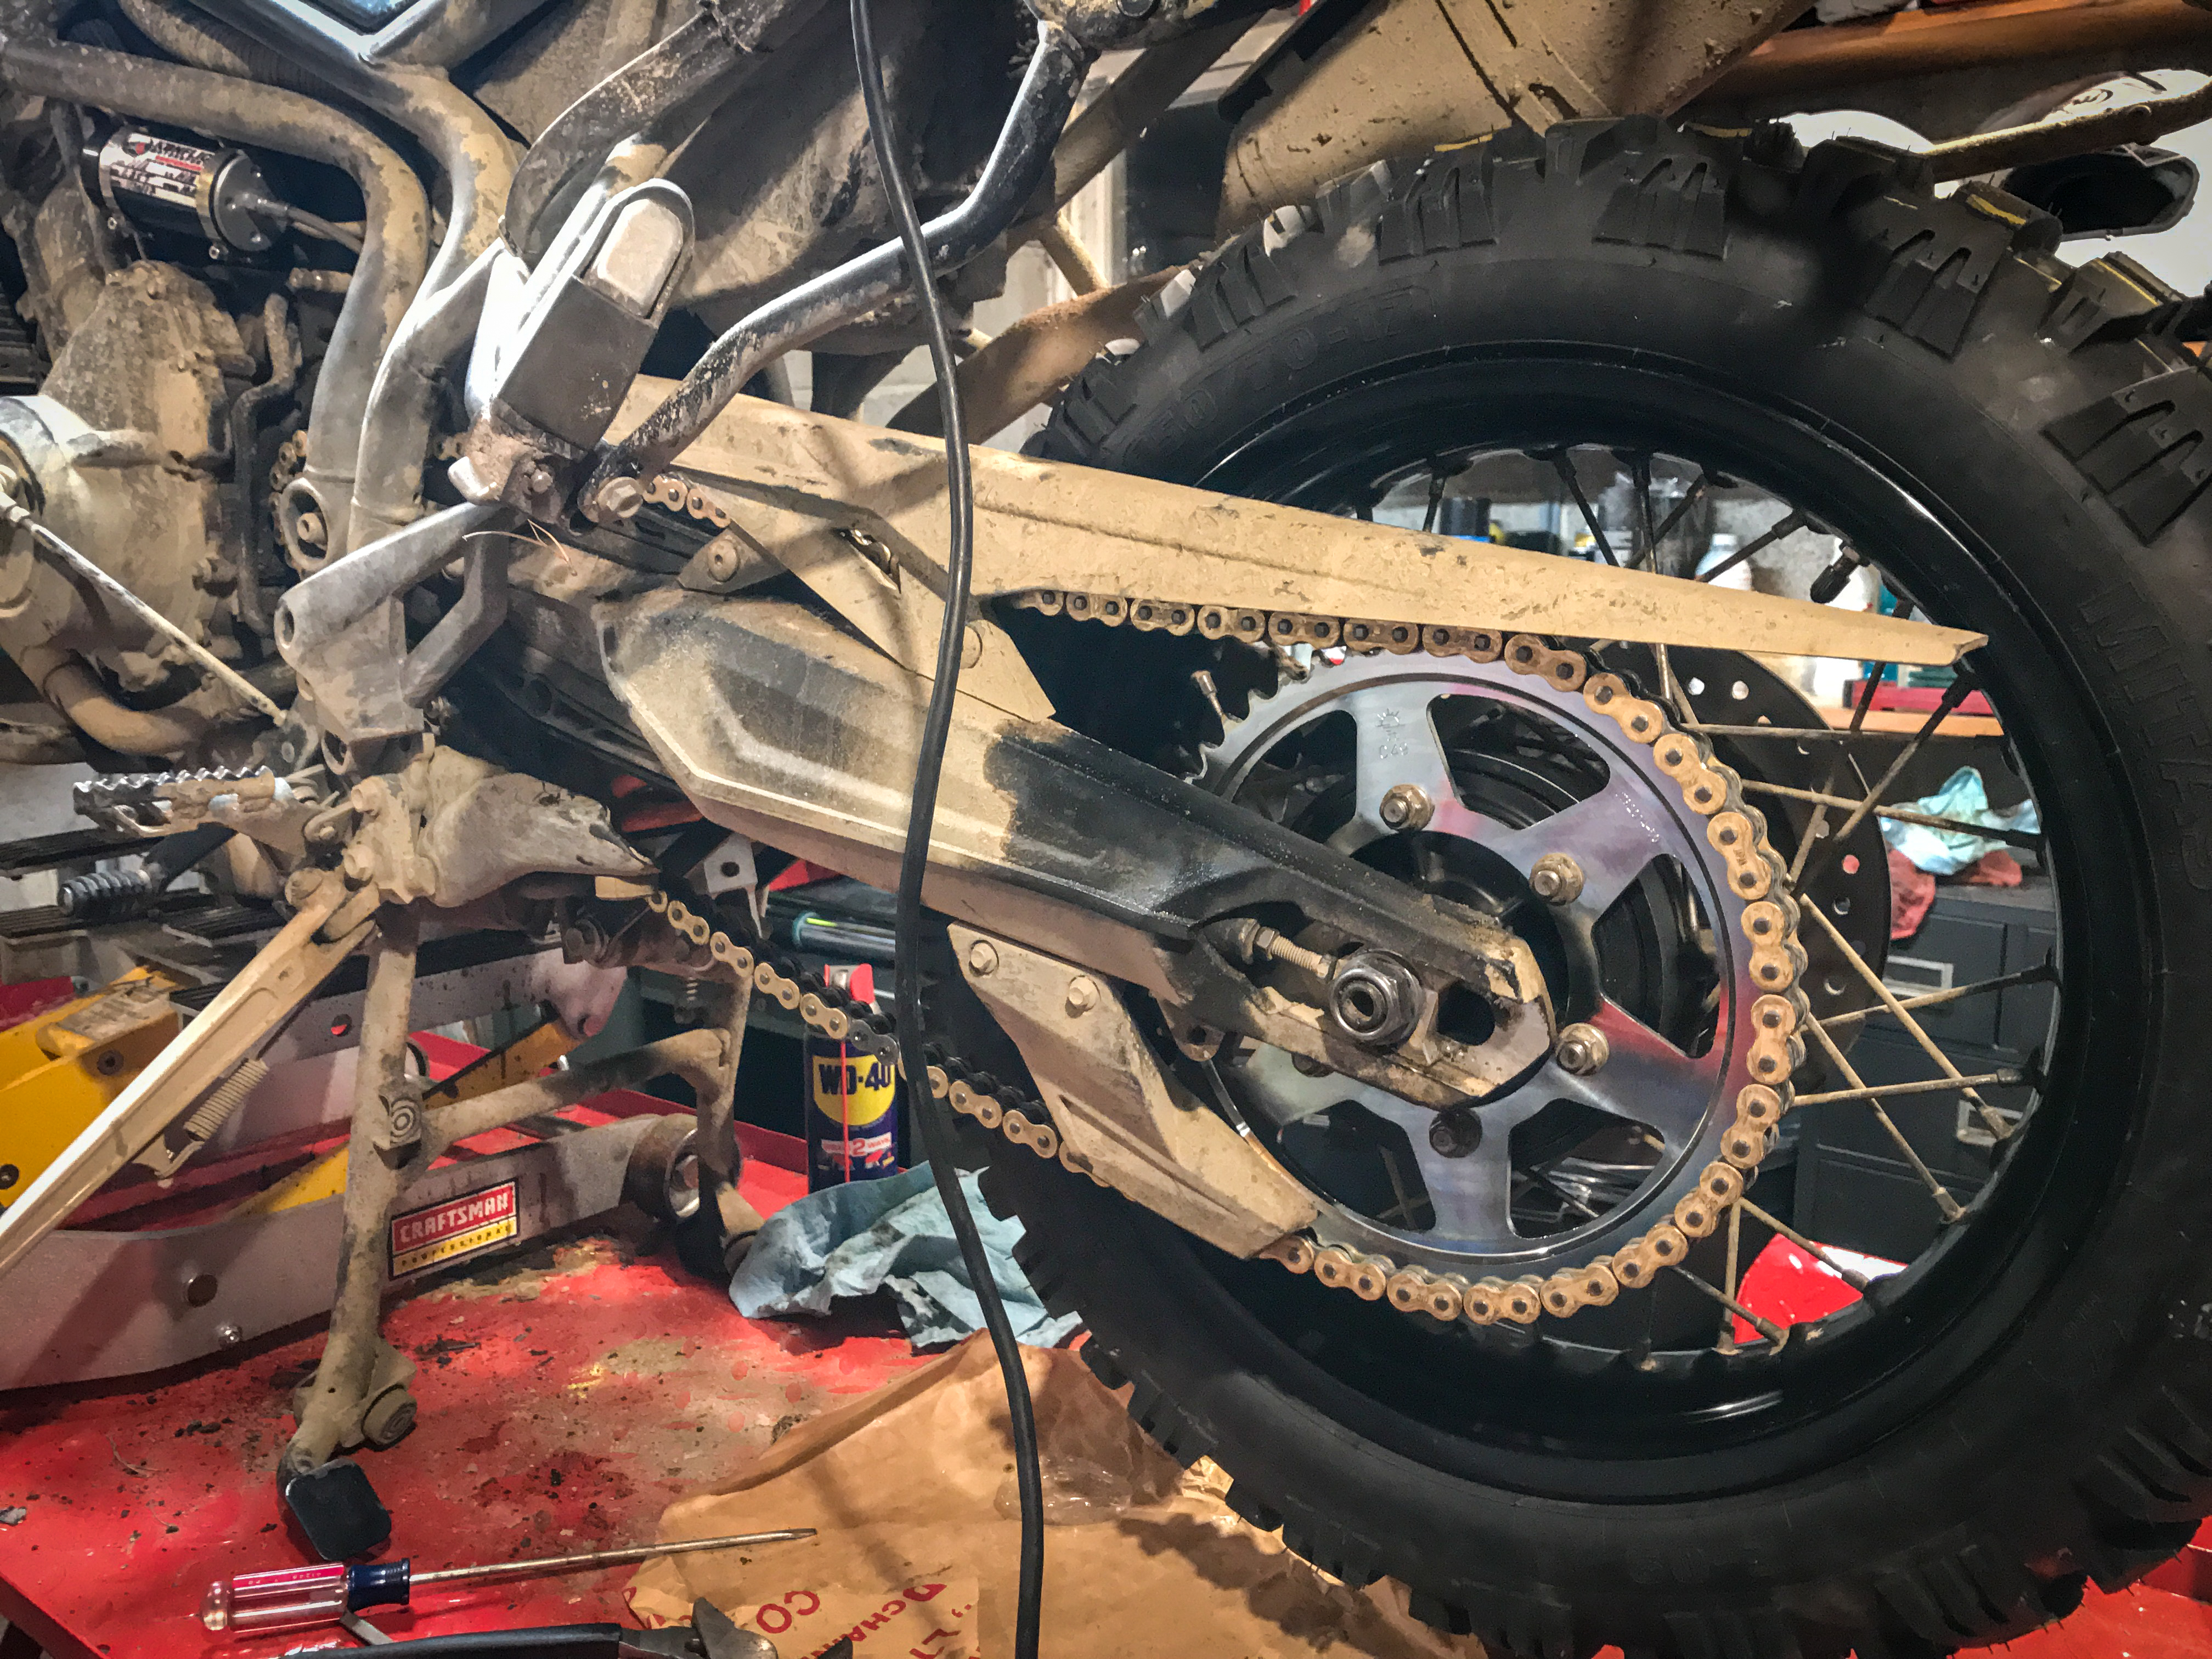 Tiger Tales Modifying An Adventure Bike For Off Road Abuse Revzilla